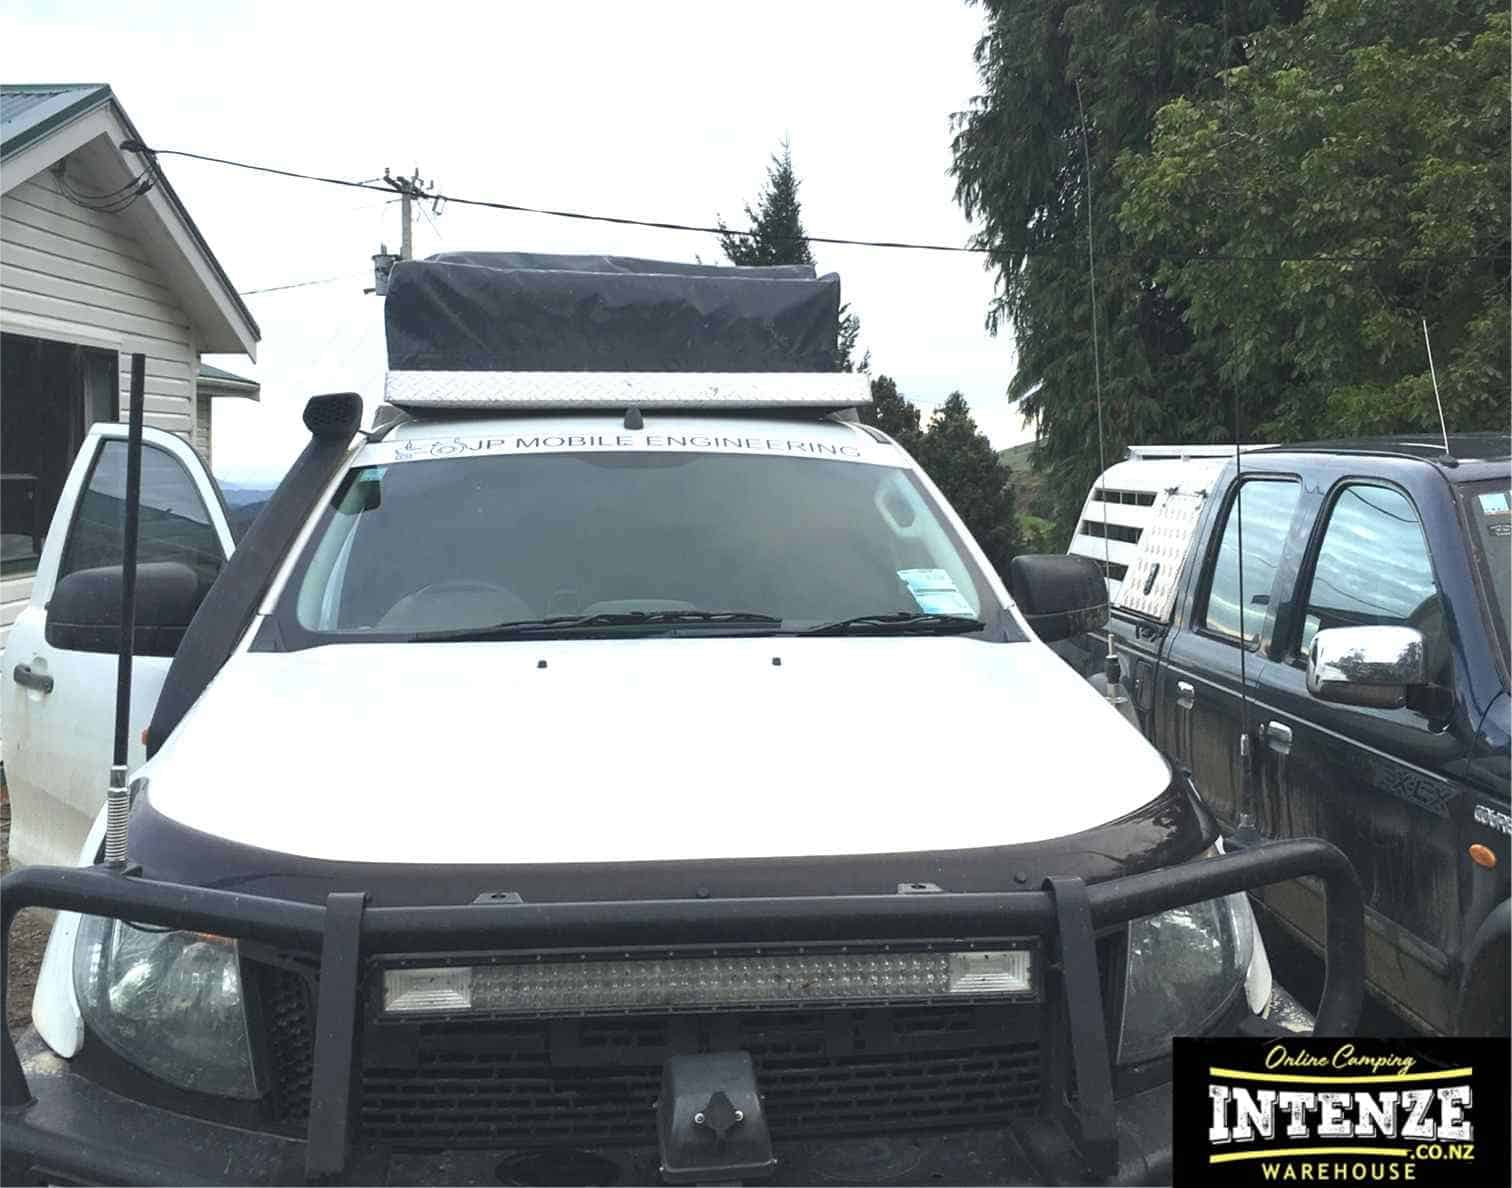 out on safari with intenze.co.nz Luxmore Roof Top Tents NZ